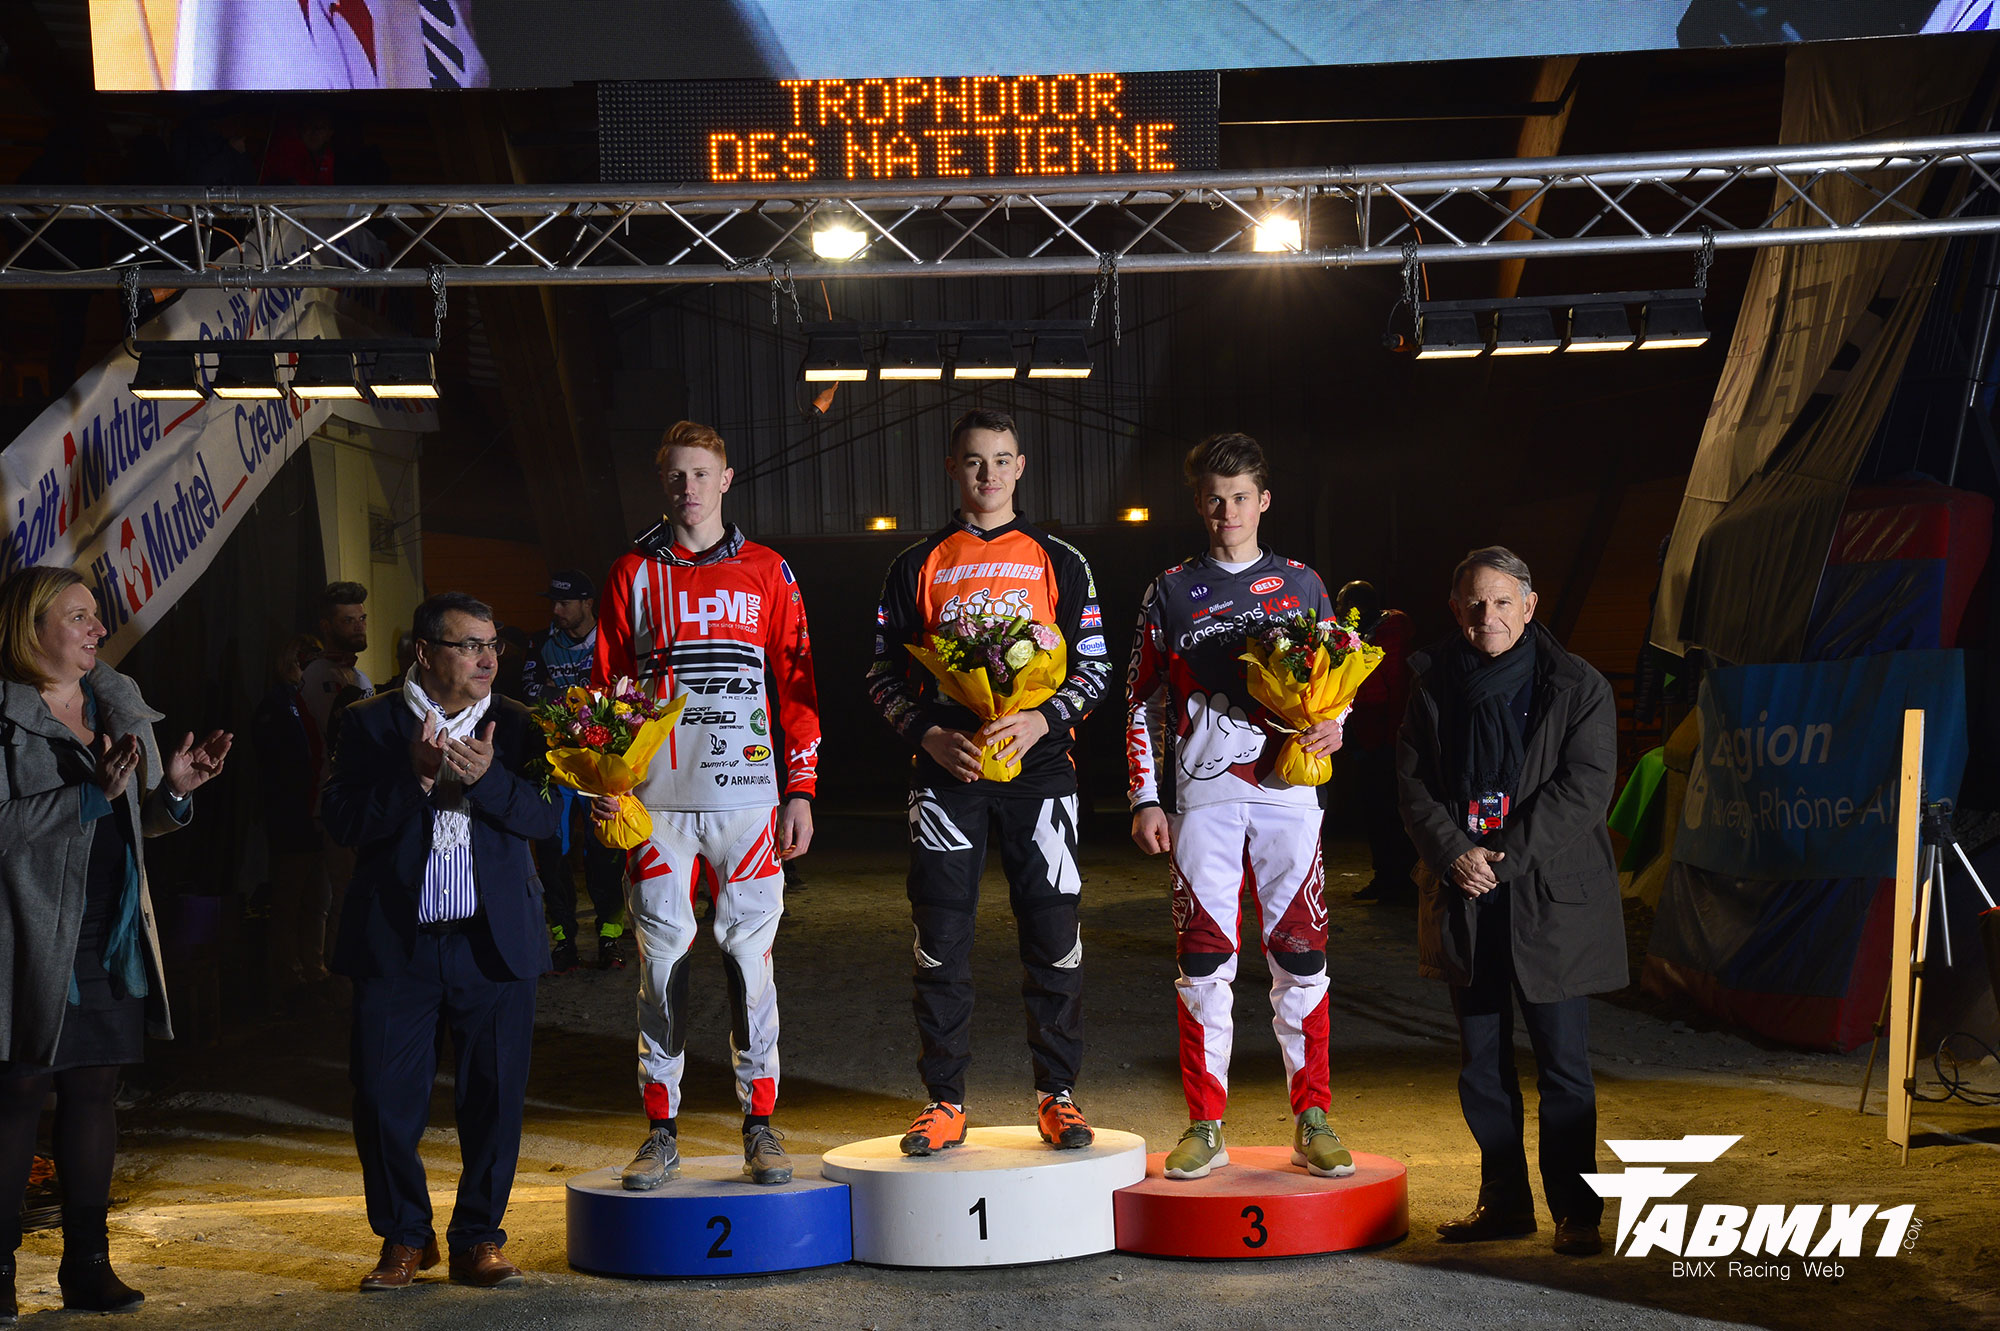 fabmx1 indoor de st etienne pics podiums challenges supercross. Black Bedroom Furniture Sets. Home Design Ideas